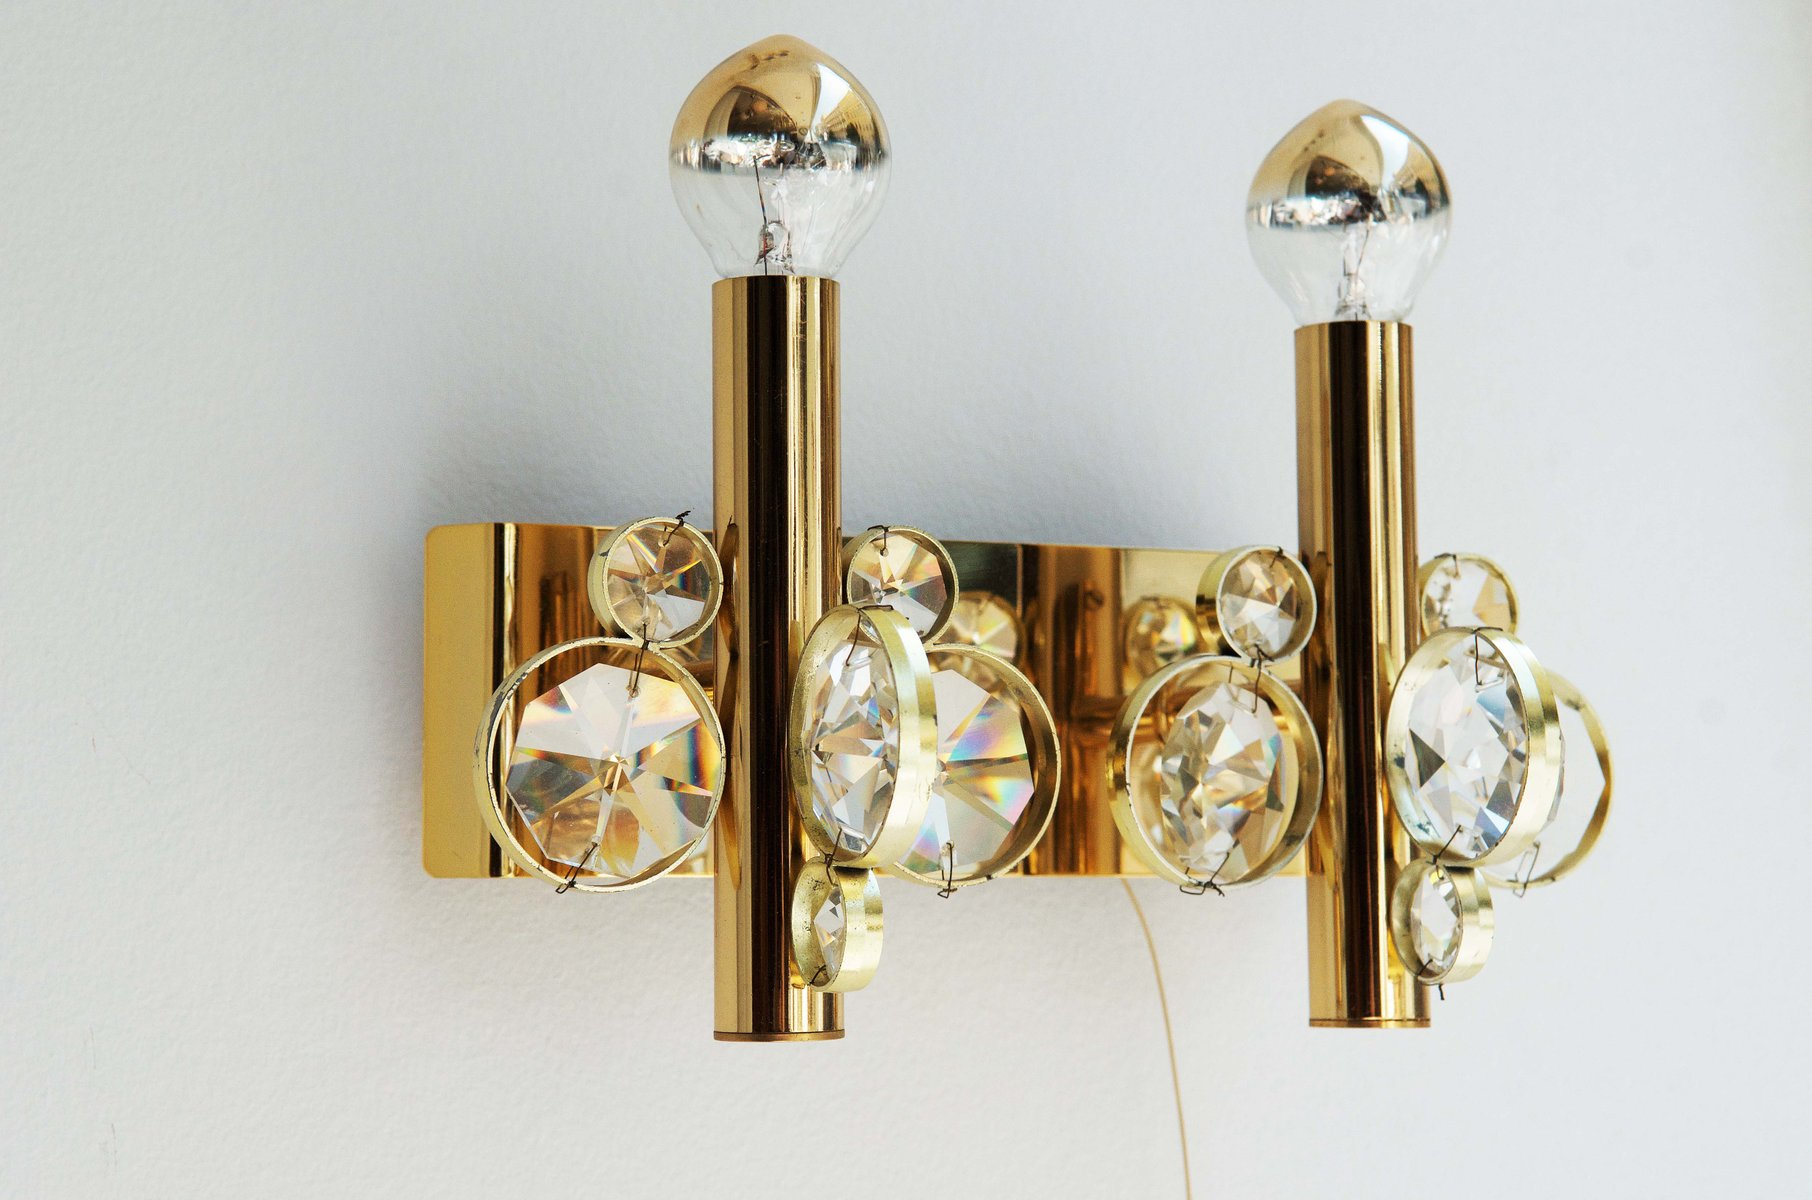 Vintage Cut Crystal Wall Sconce for sale at Pamono on Vintage Wall Sconces id=73296